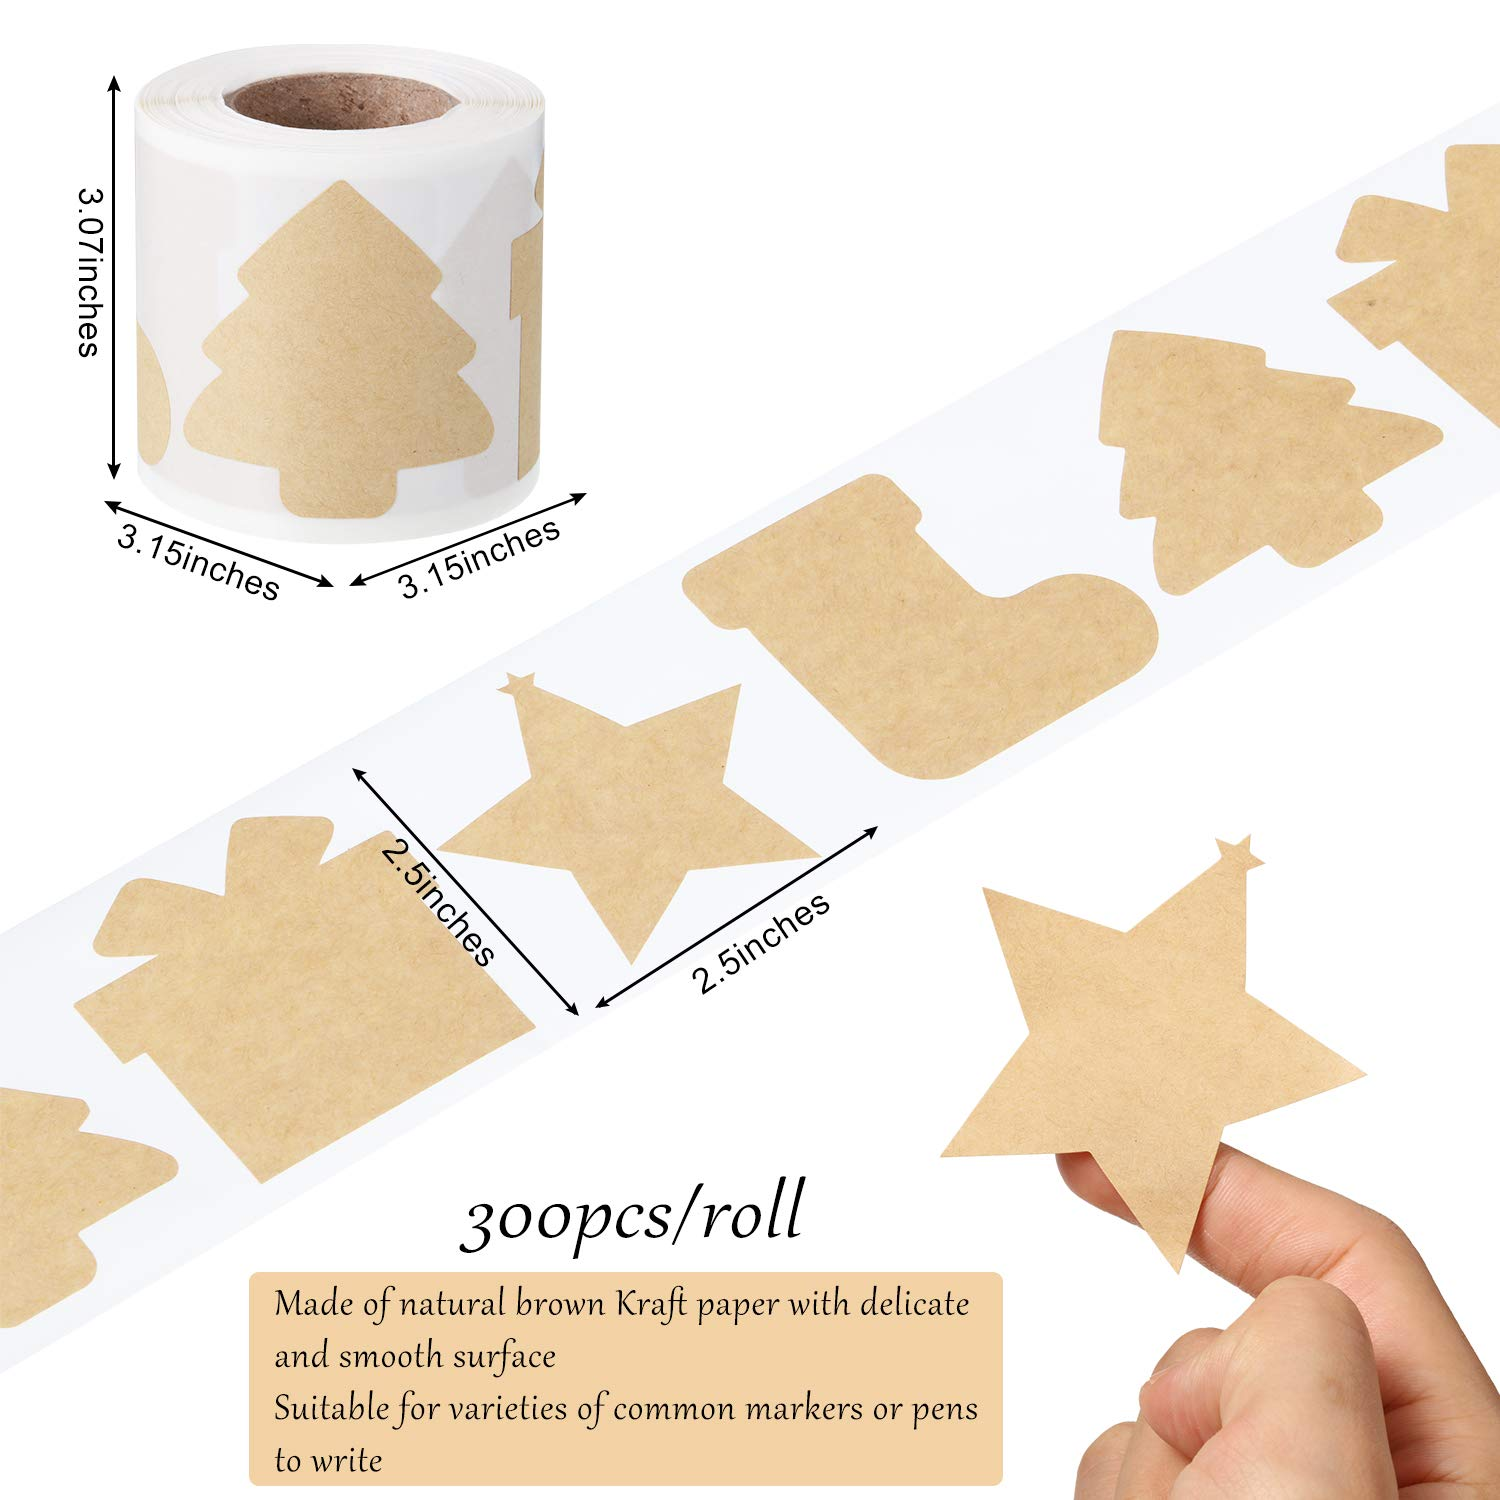 300 2.5x2.5 Pieces Christmas Themed Kraft Paper Label Stickers Brown Kraft Sticker Tags Labels Christmas Name Tags for Xmas Gift in 4 Shapes Include Tree Star Sock and Gift Box